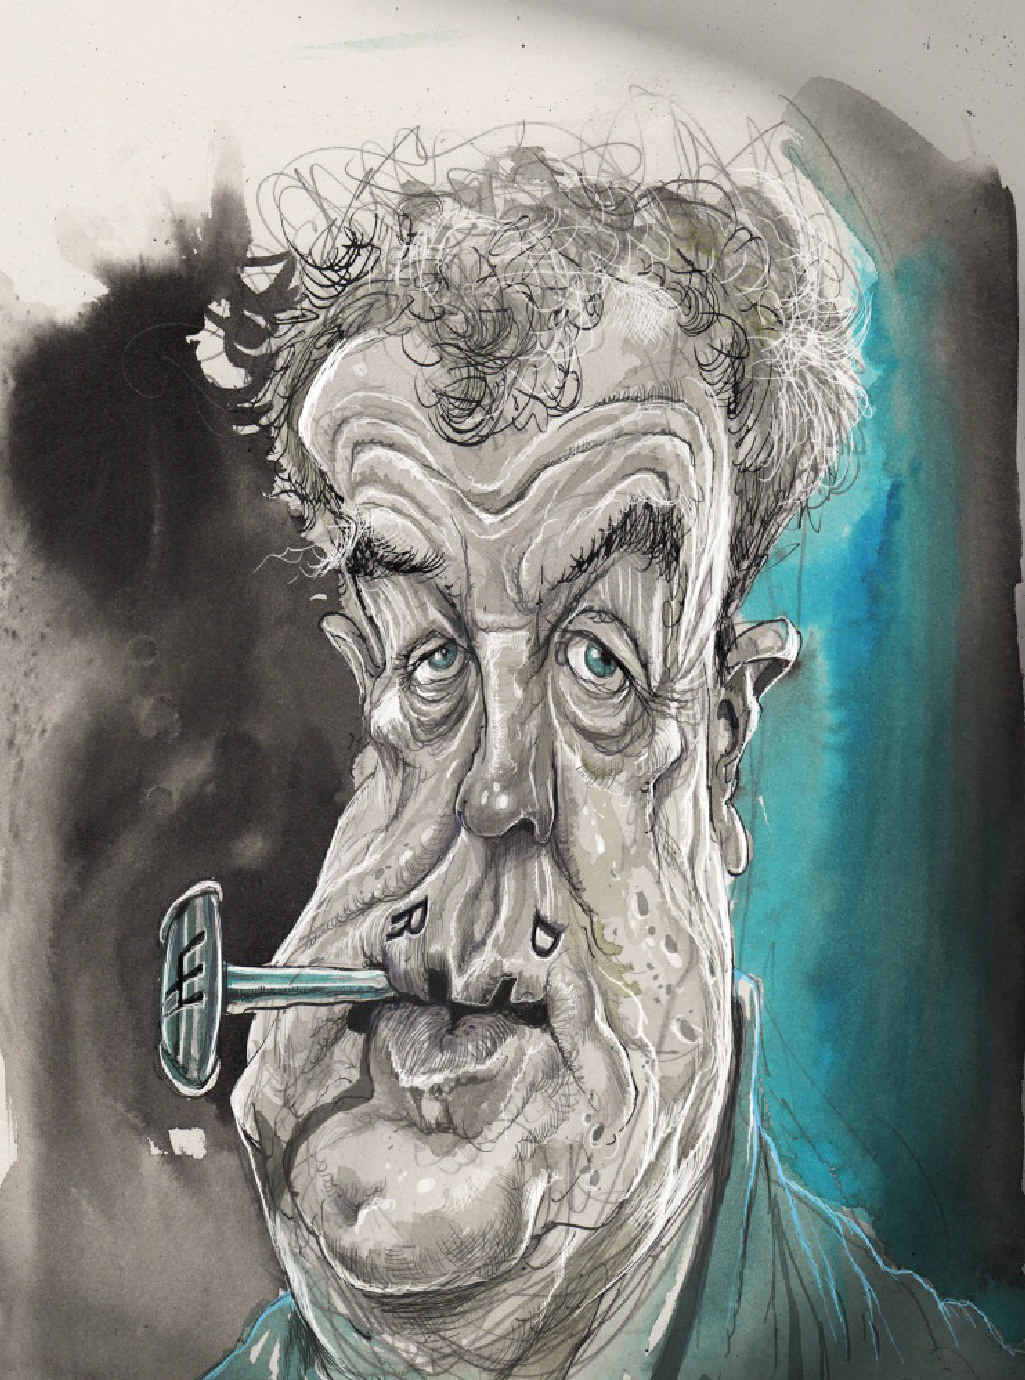 TOP GEAR: David Rowe's caricature of Jeremy Clarkson won the award for cartoon of the year.